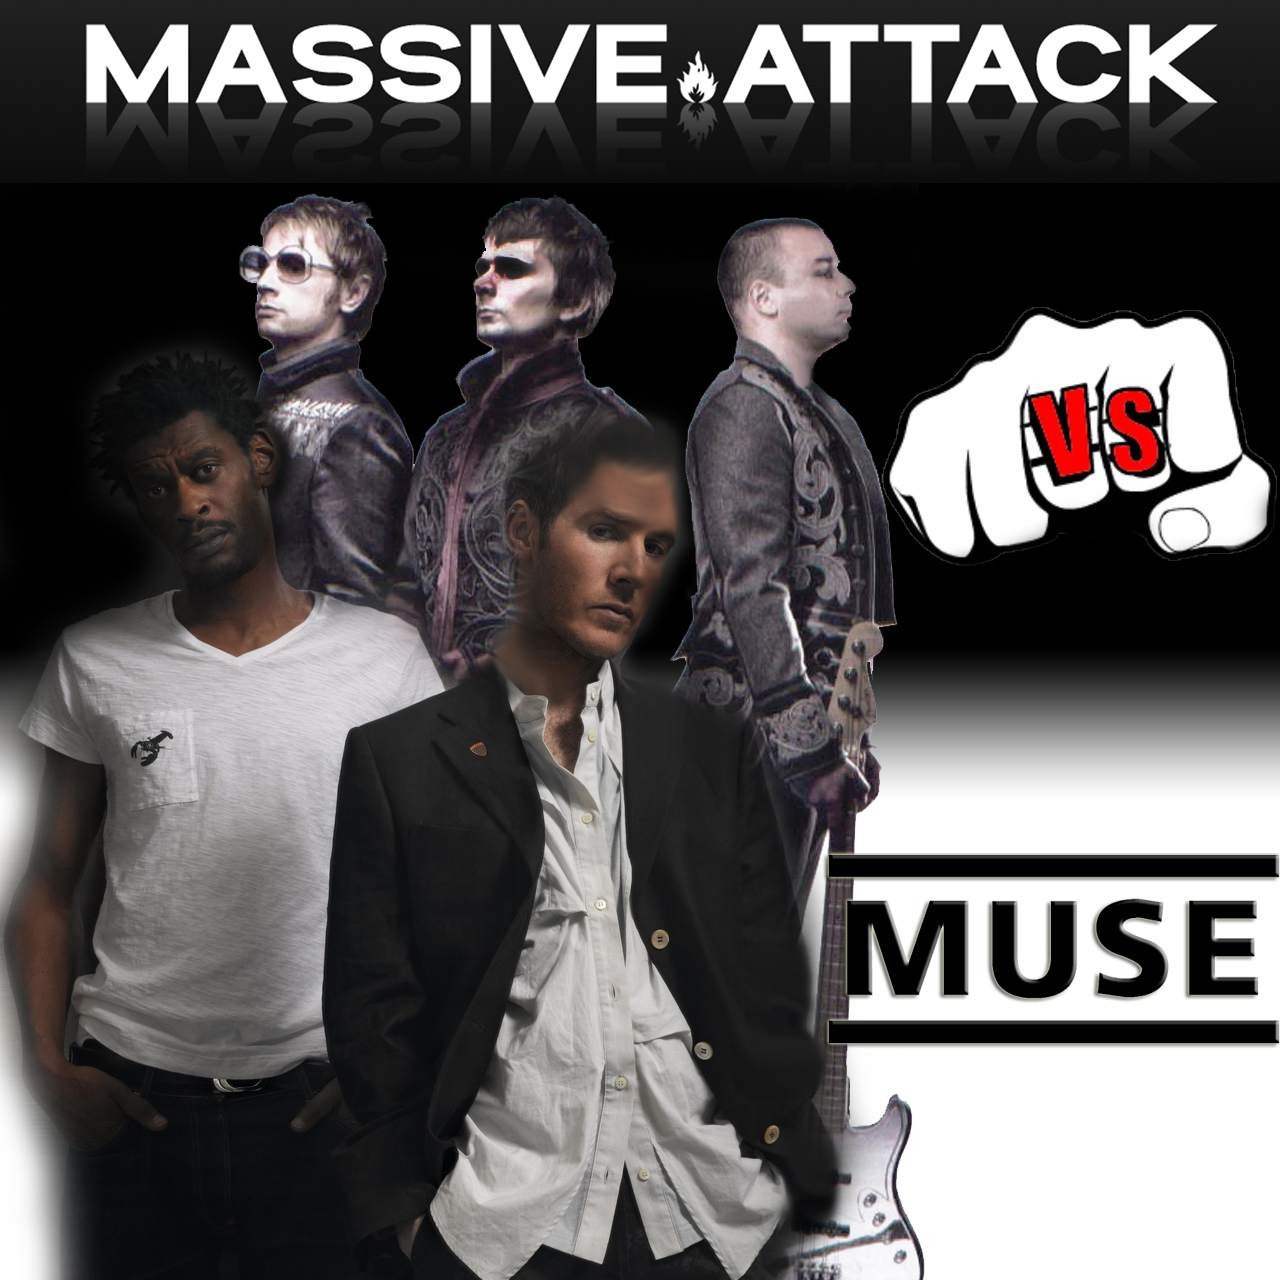 Massive Attack - Teardrop (but it's playing Muse - Liquid State)